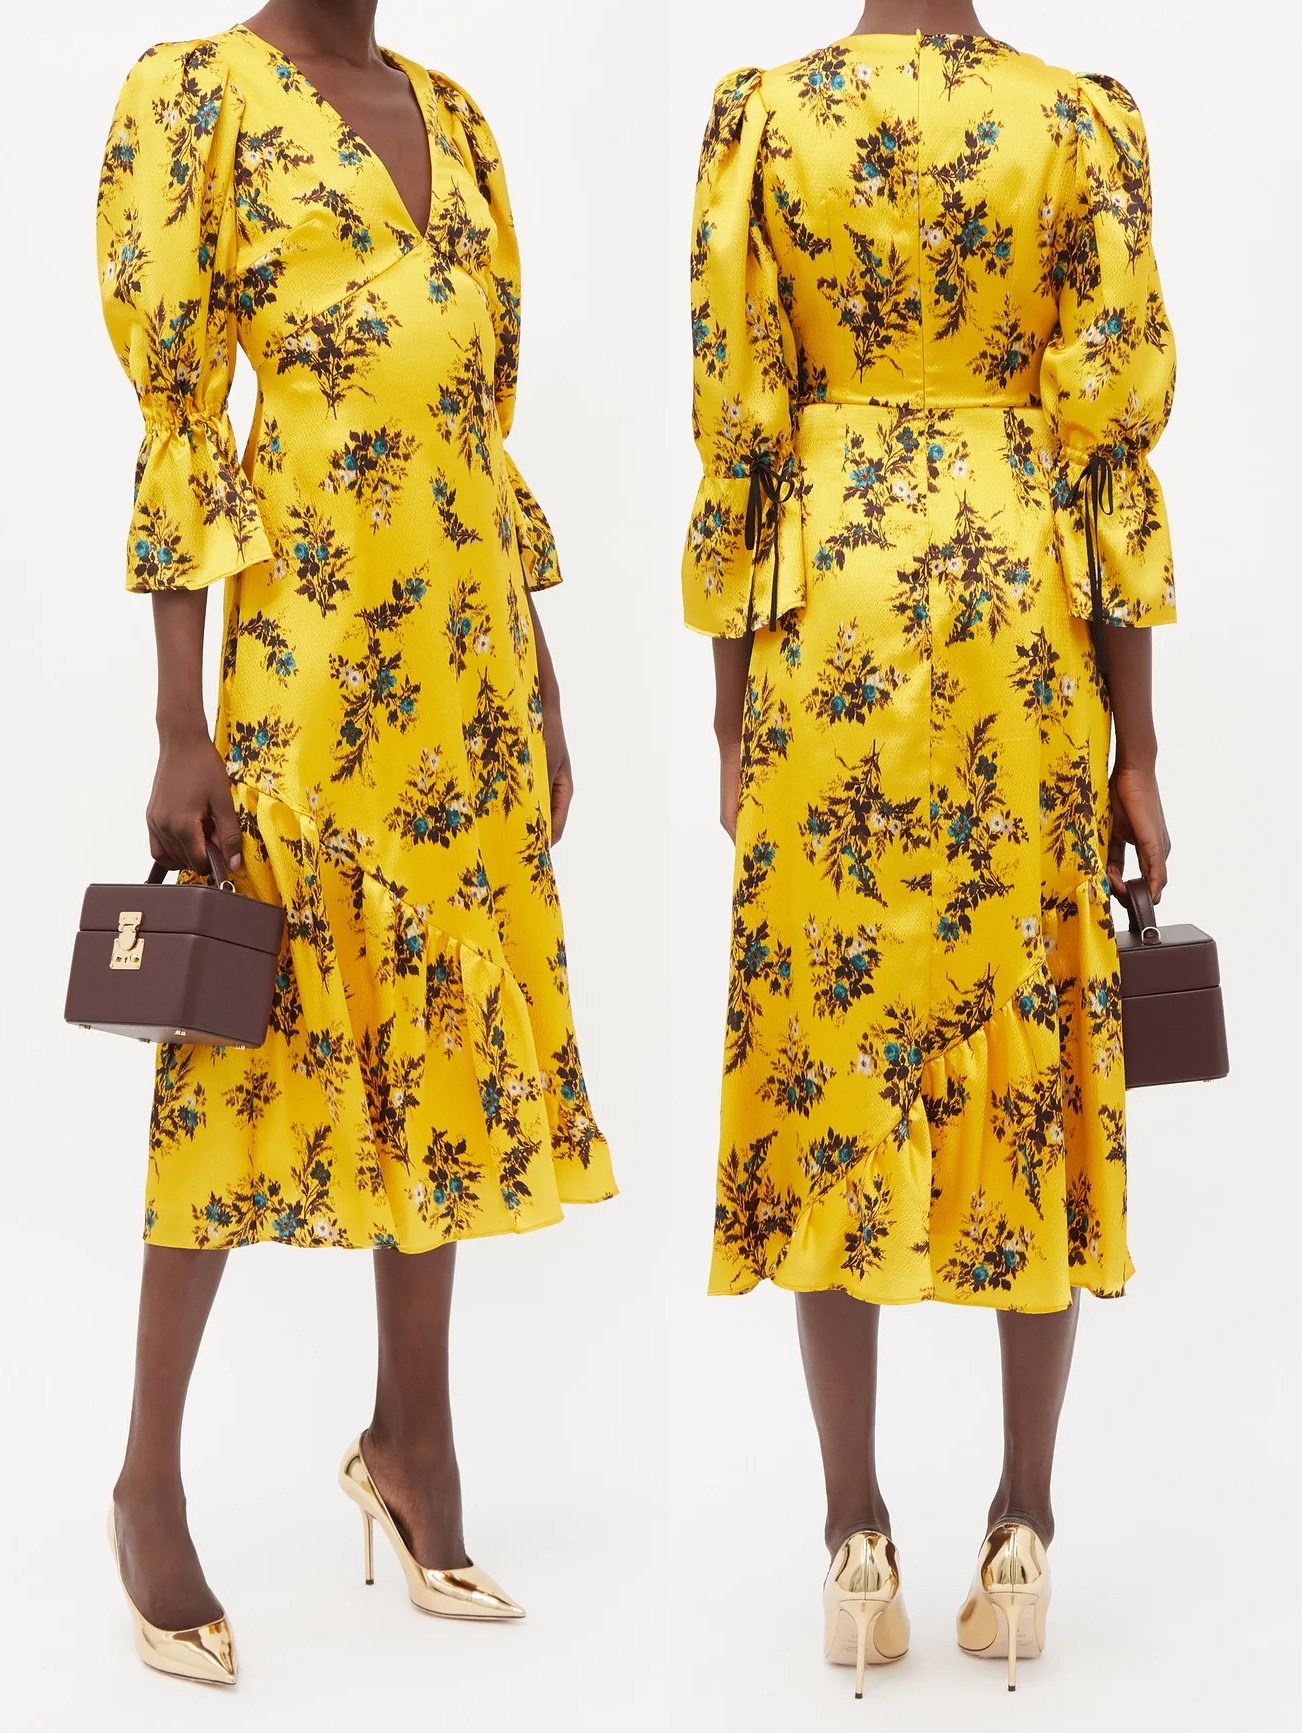 Erdem Elmer Dress 2021. Floral Yellow Dress for Royal Ascot 2021. Yellow Floral Midi Dress 2021. Dress for Royal Ascot 2021. How to Dress for Royal Ascot 2021. What to wear for Royal Ascot 2021. Royal Ascot Outfits. Designer Dress for Royal Ascot. Dress in Pantone Illuminating Yellow 2021. How to wear Illuminating Yellow 2021. Royal Ascot Fashion 2021. Royal Ascot Outfit Ideas 2021.